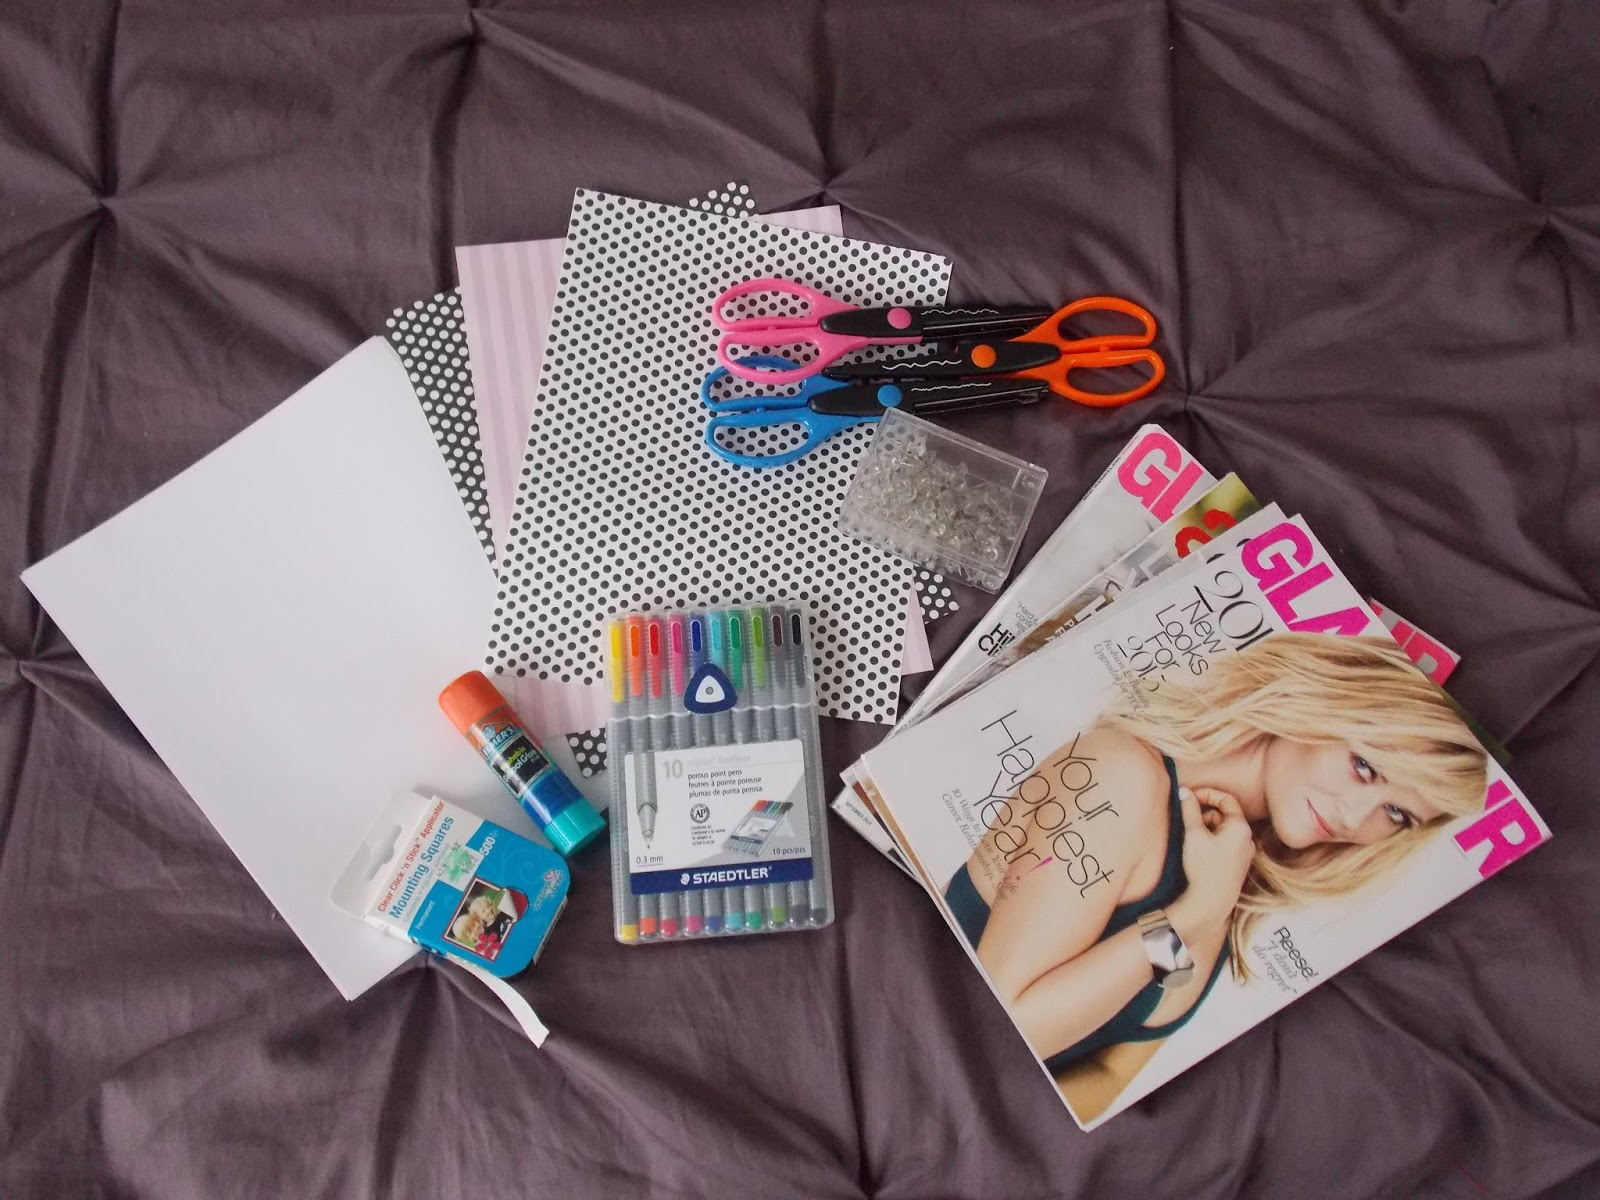 Vision board materials by Janetta LeRose